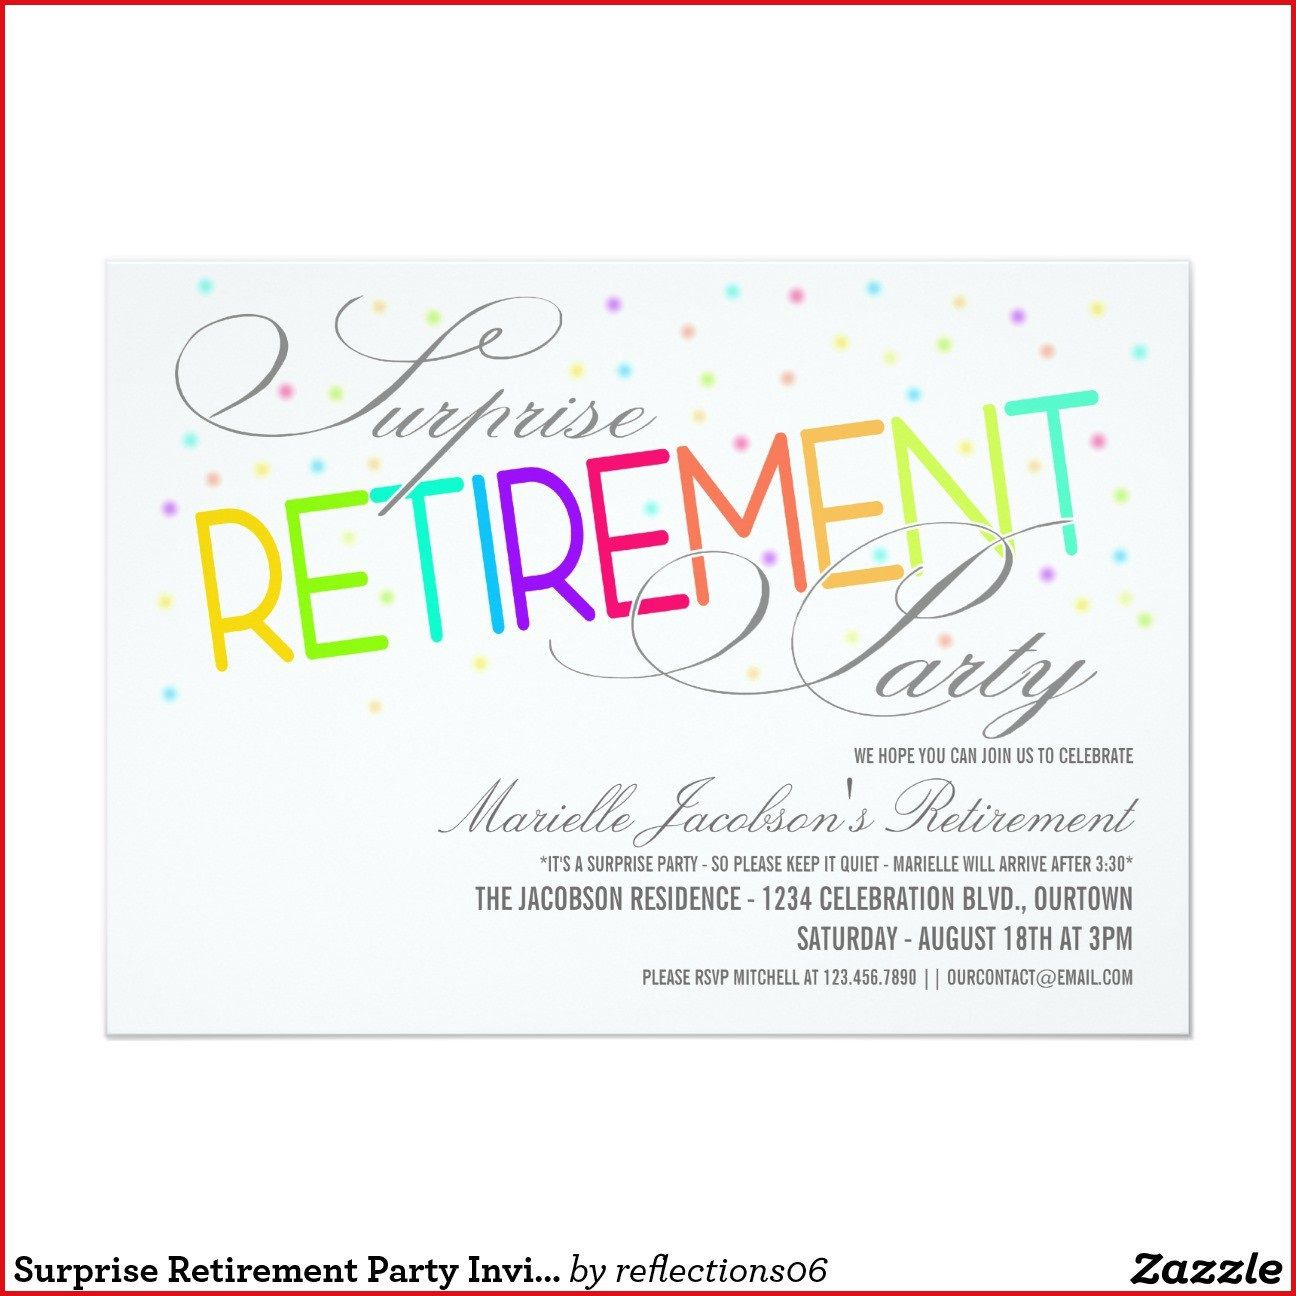 009 Incredible Retirement Party Invitation Template Free Printable Idea Full